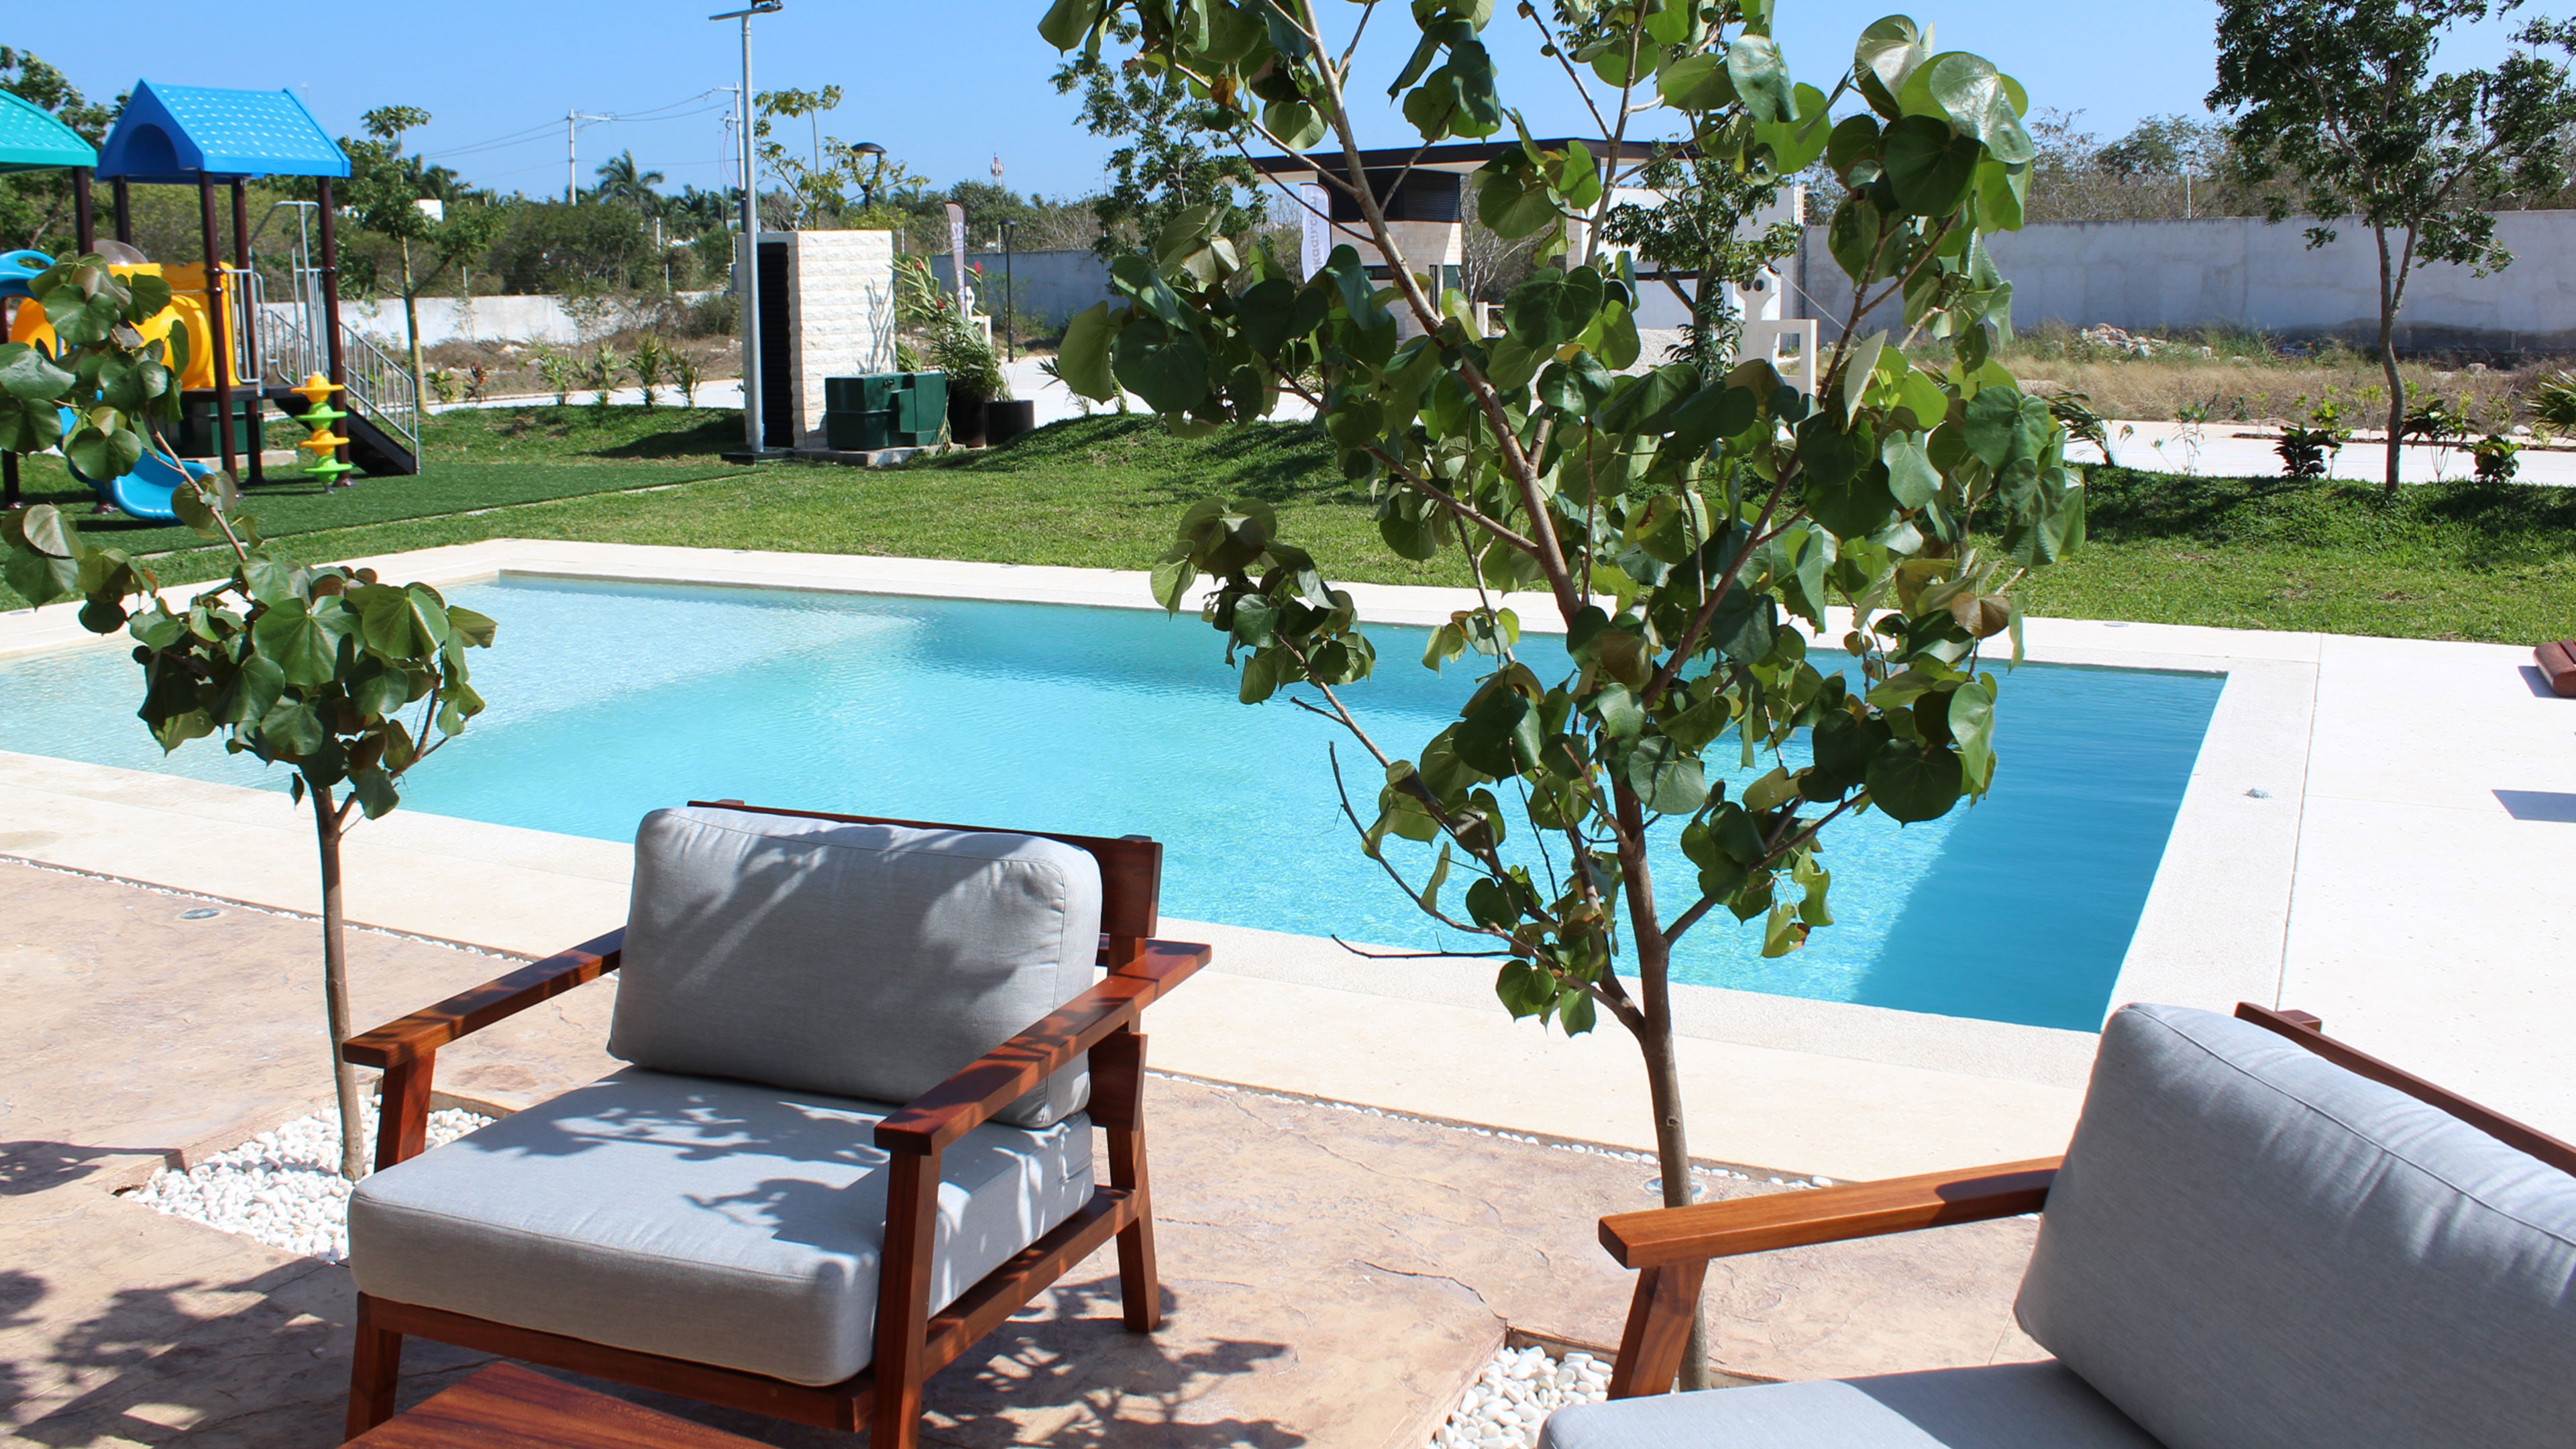 Residential land in the most strategic place, temozon